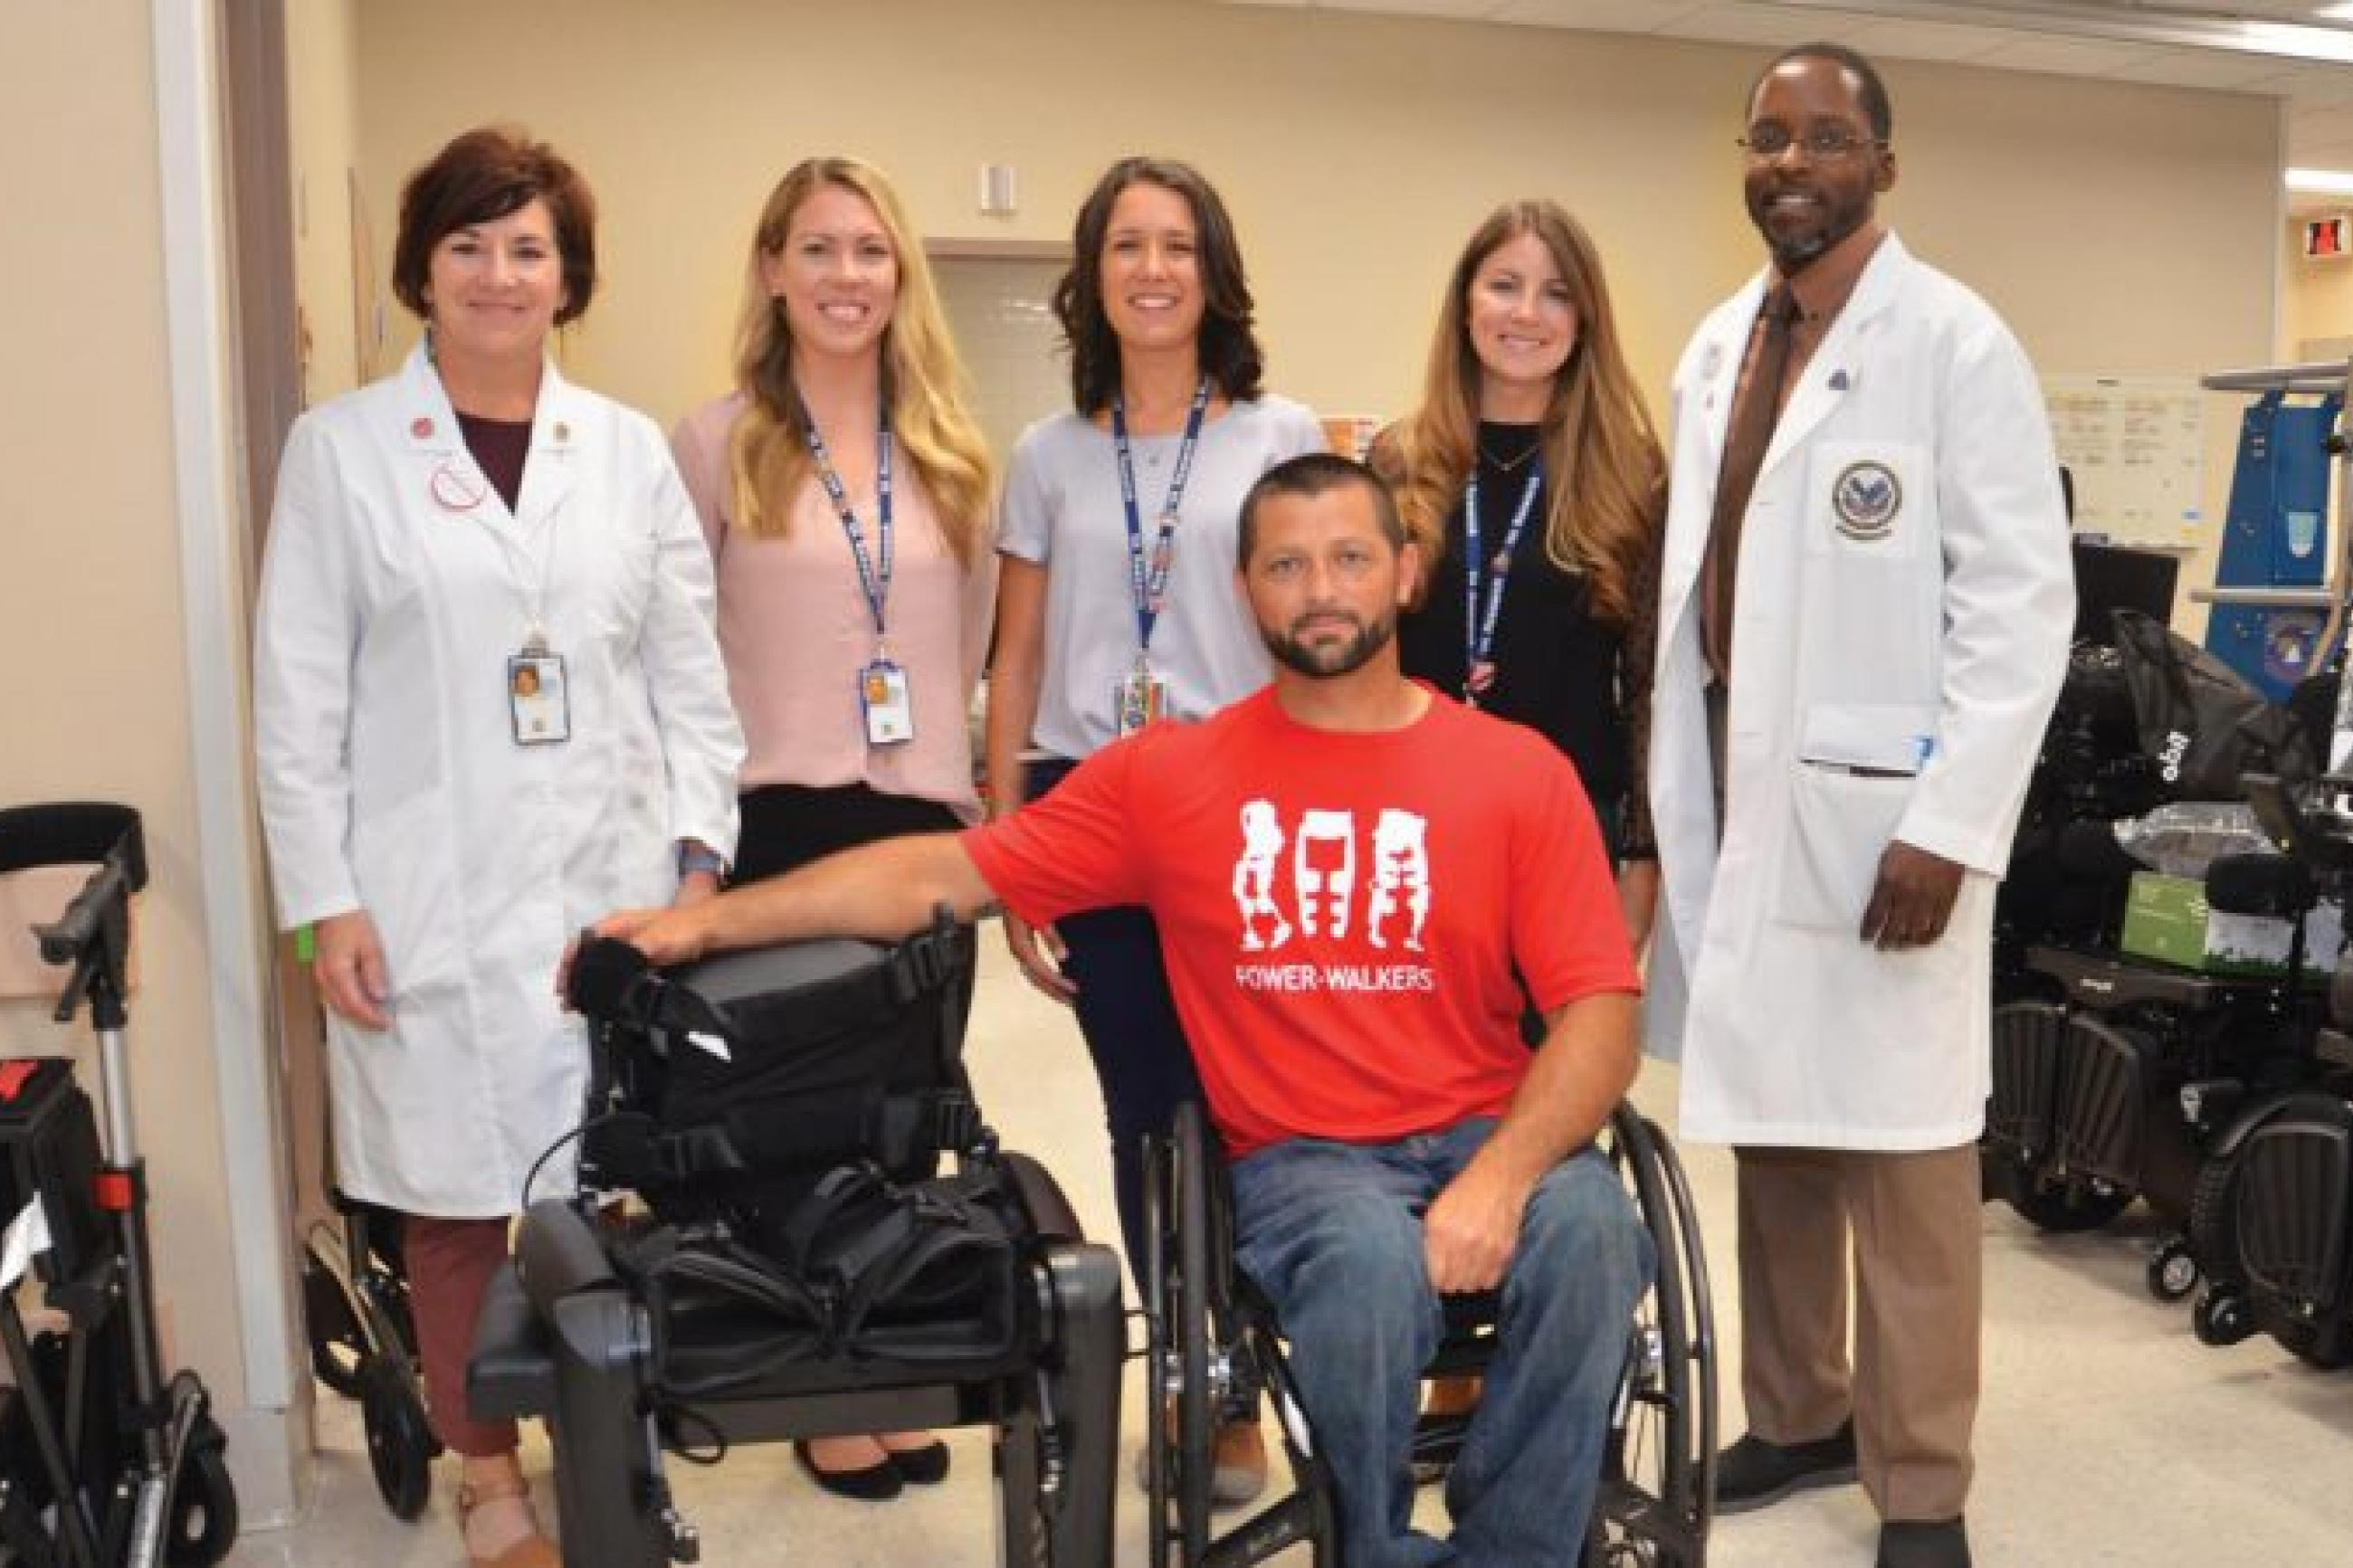 Veteran Tim Conner, seated, with his new exoskeleton and the team that helped make it possible